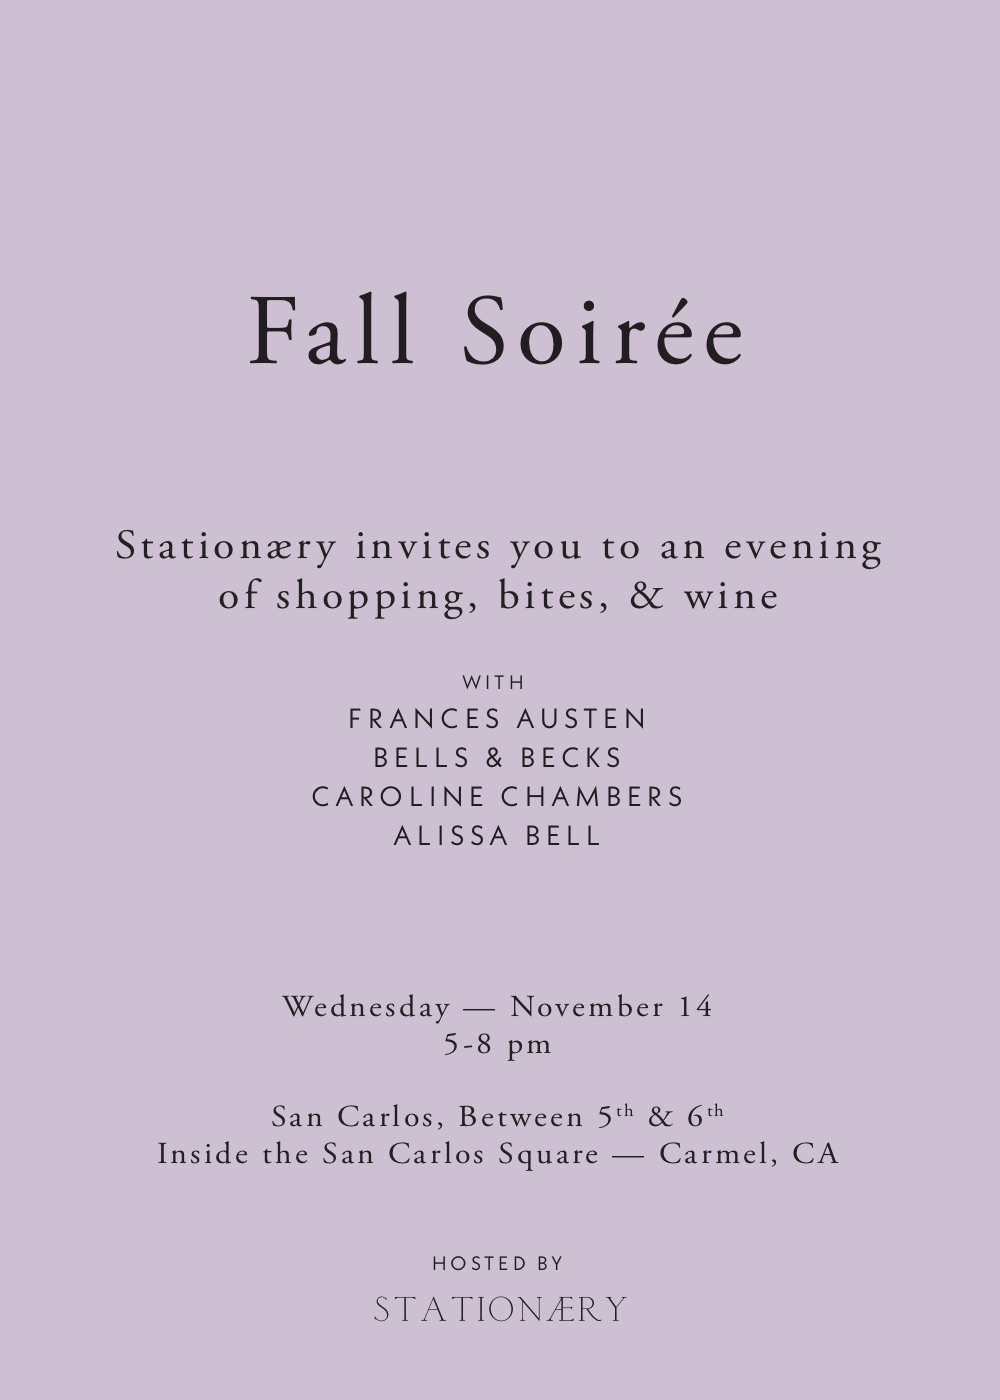 Fall Soiree invitation - Stationaery.jpg